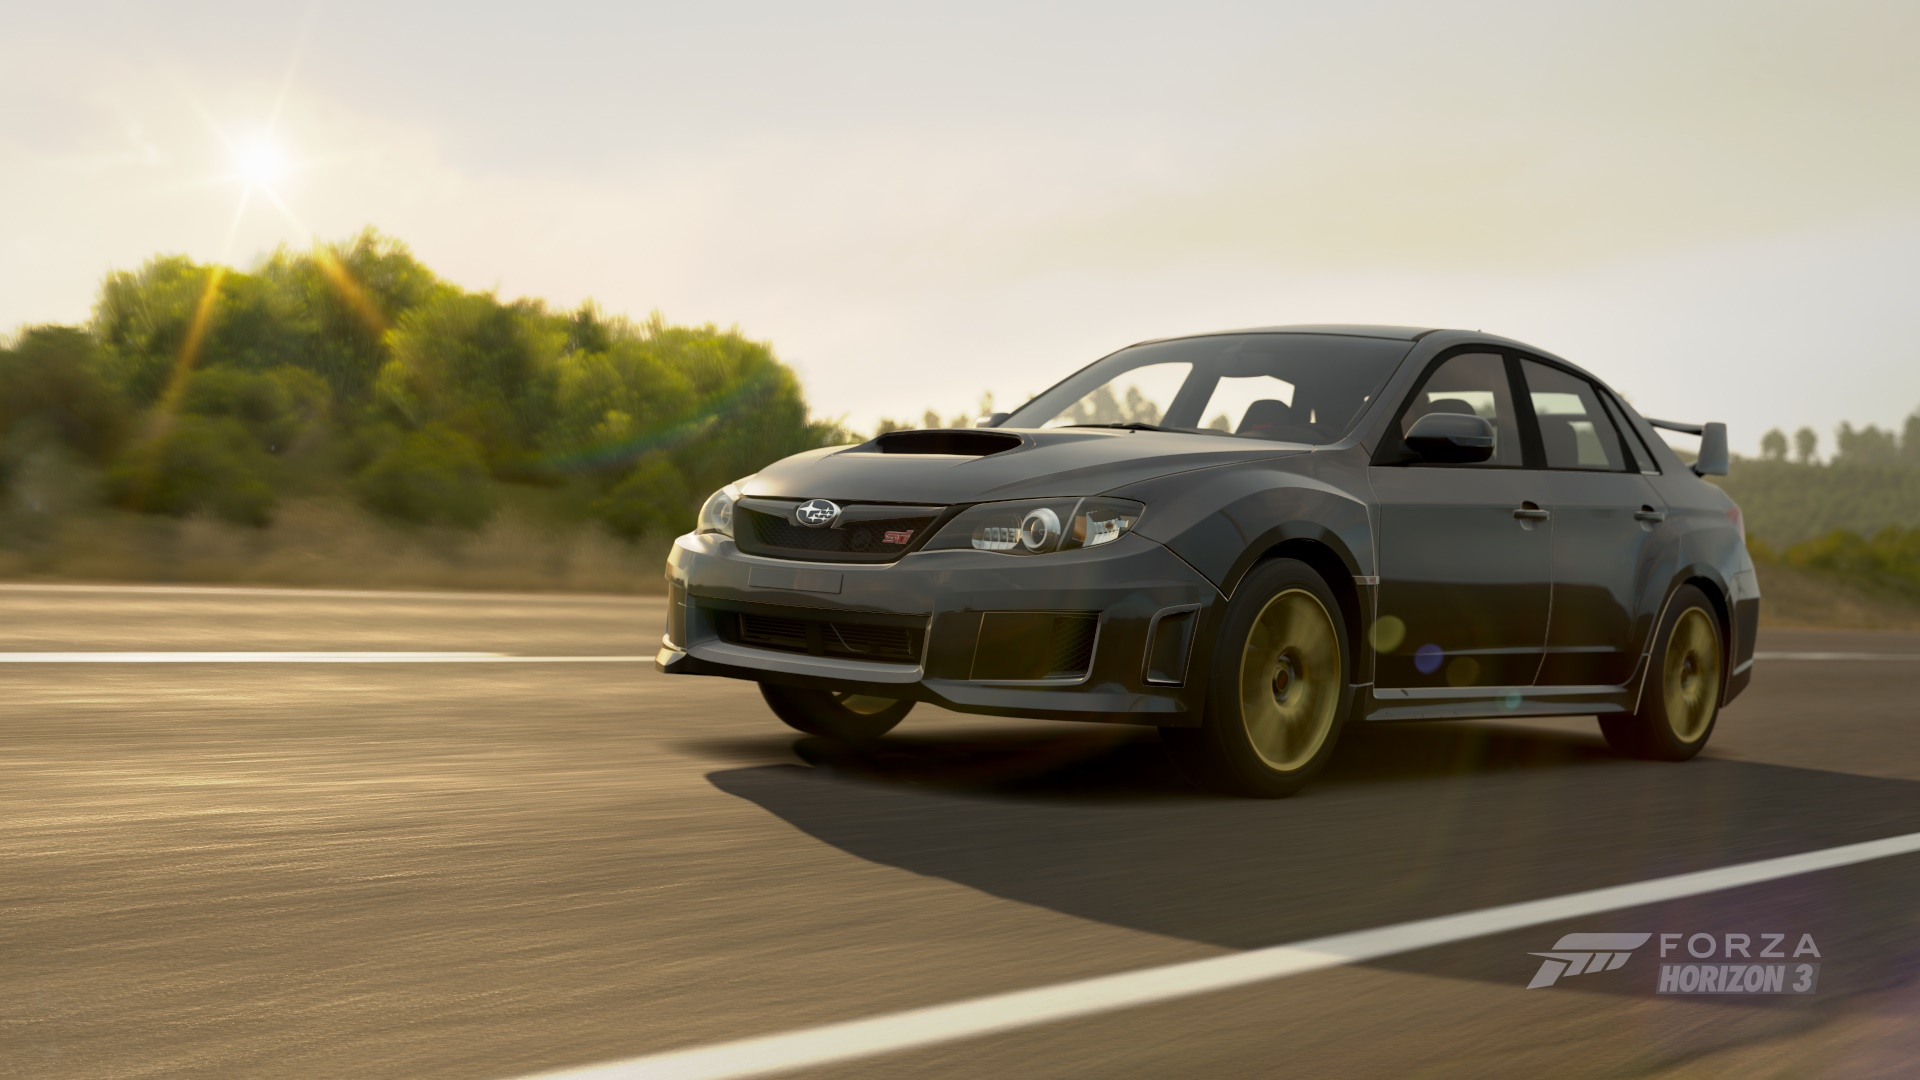 2011 Subaru WRX STI   Photo By Mdspeedster